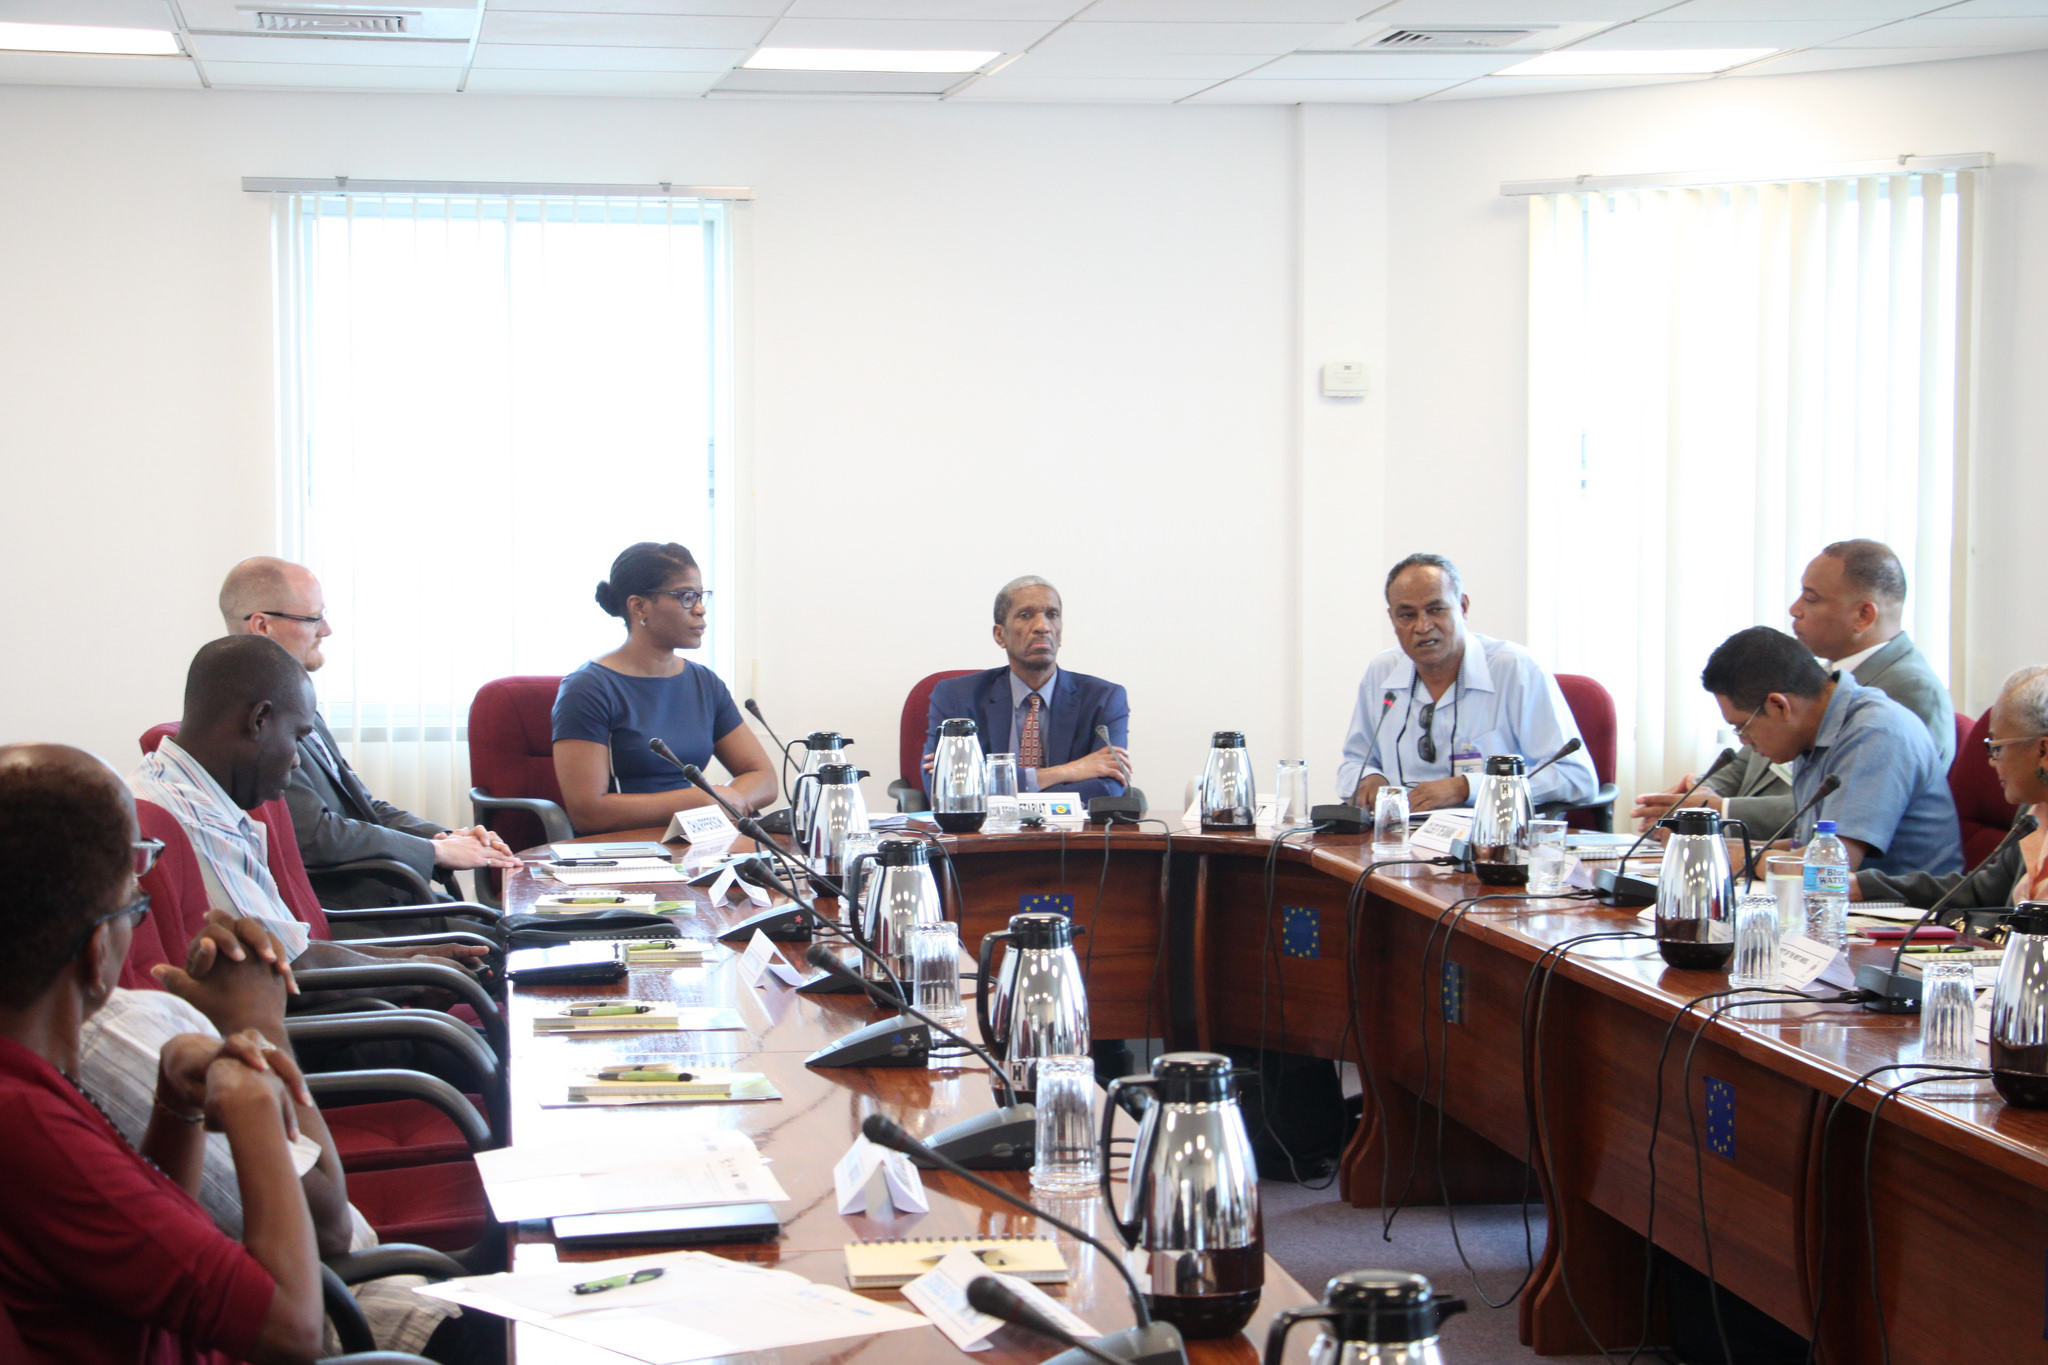 Participants at the opening ceremony for training session on Multilateral Environmental Agreements (MEAs) hosted by the CARICOM Secretariat, 21 June, 2016.